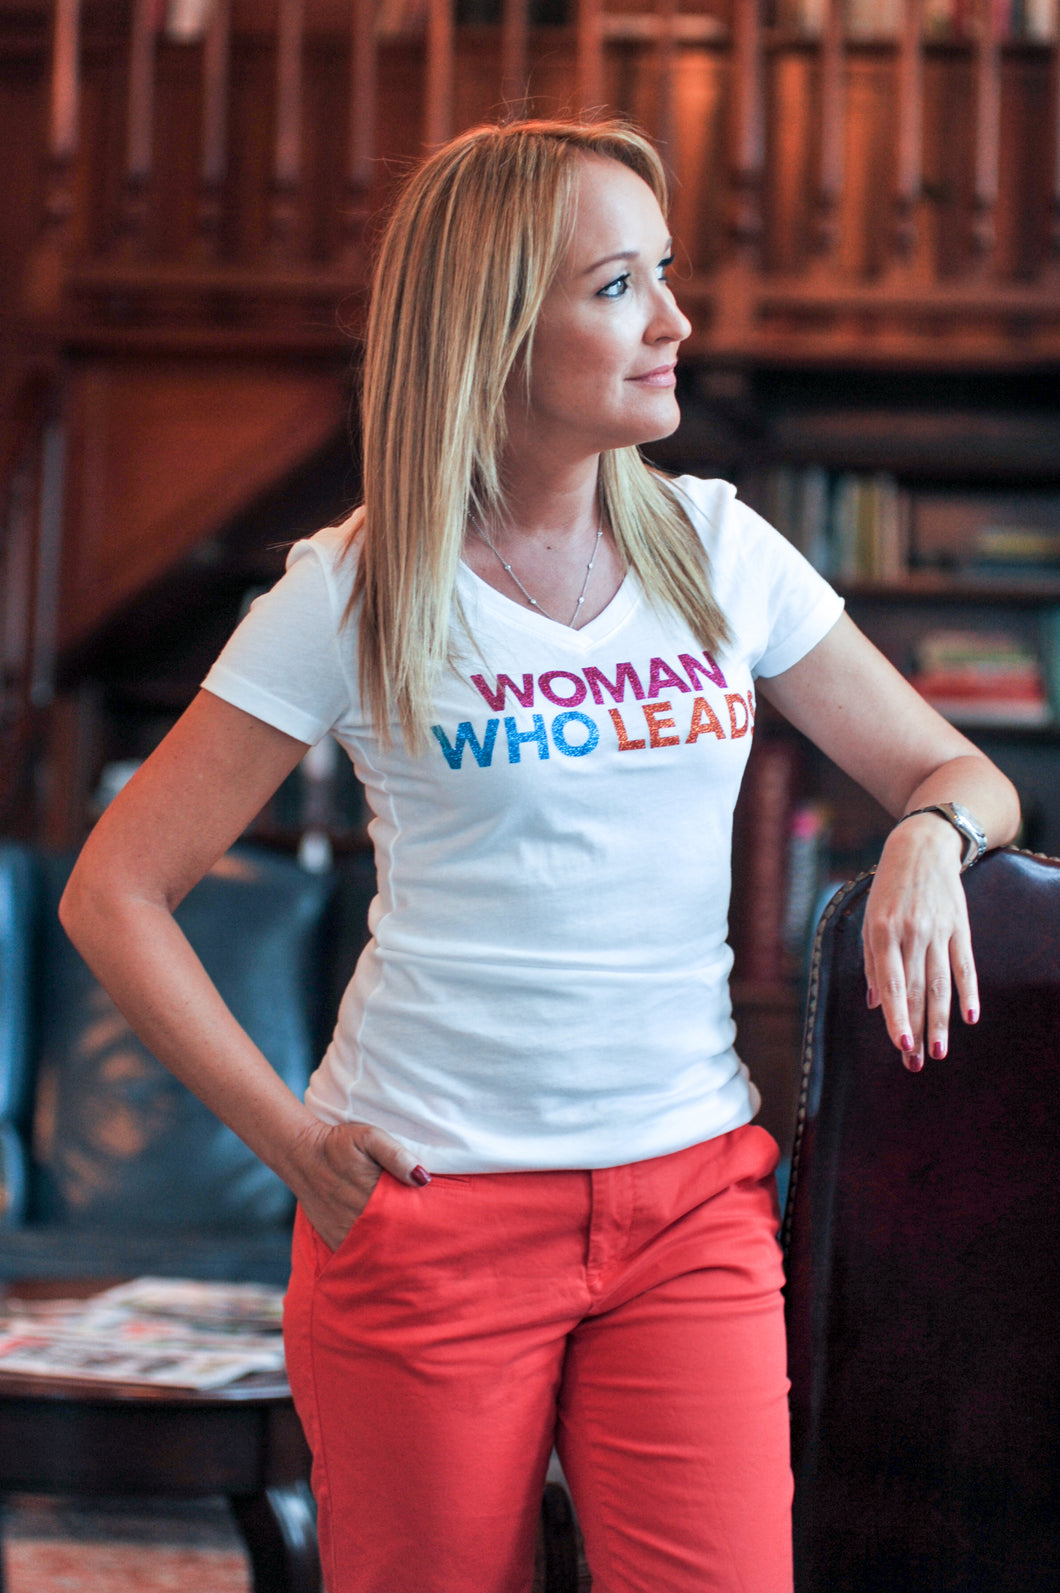 Woman Who Leads shirt